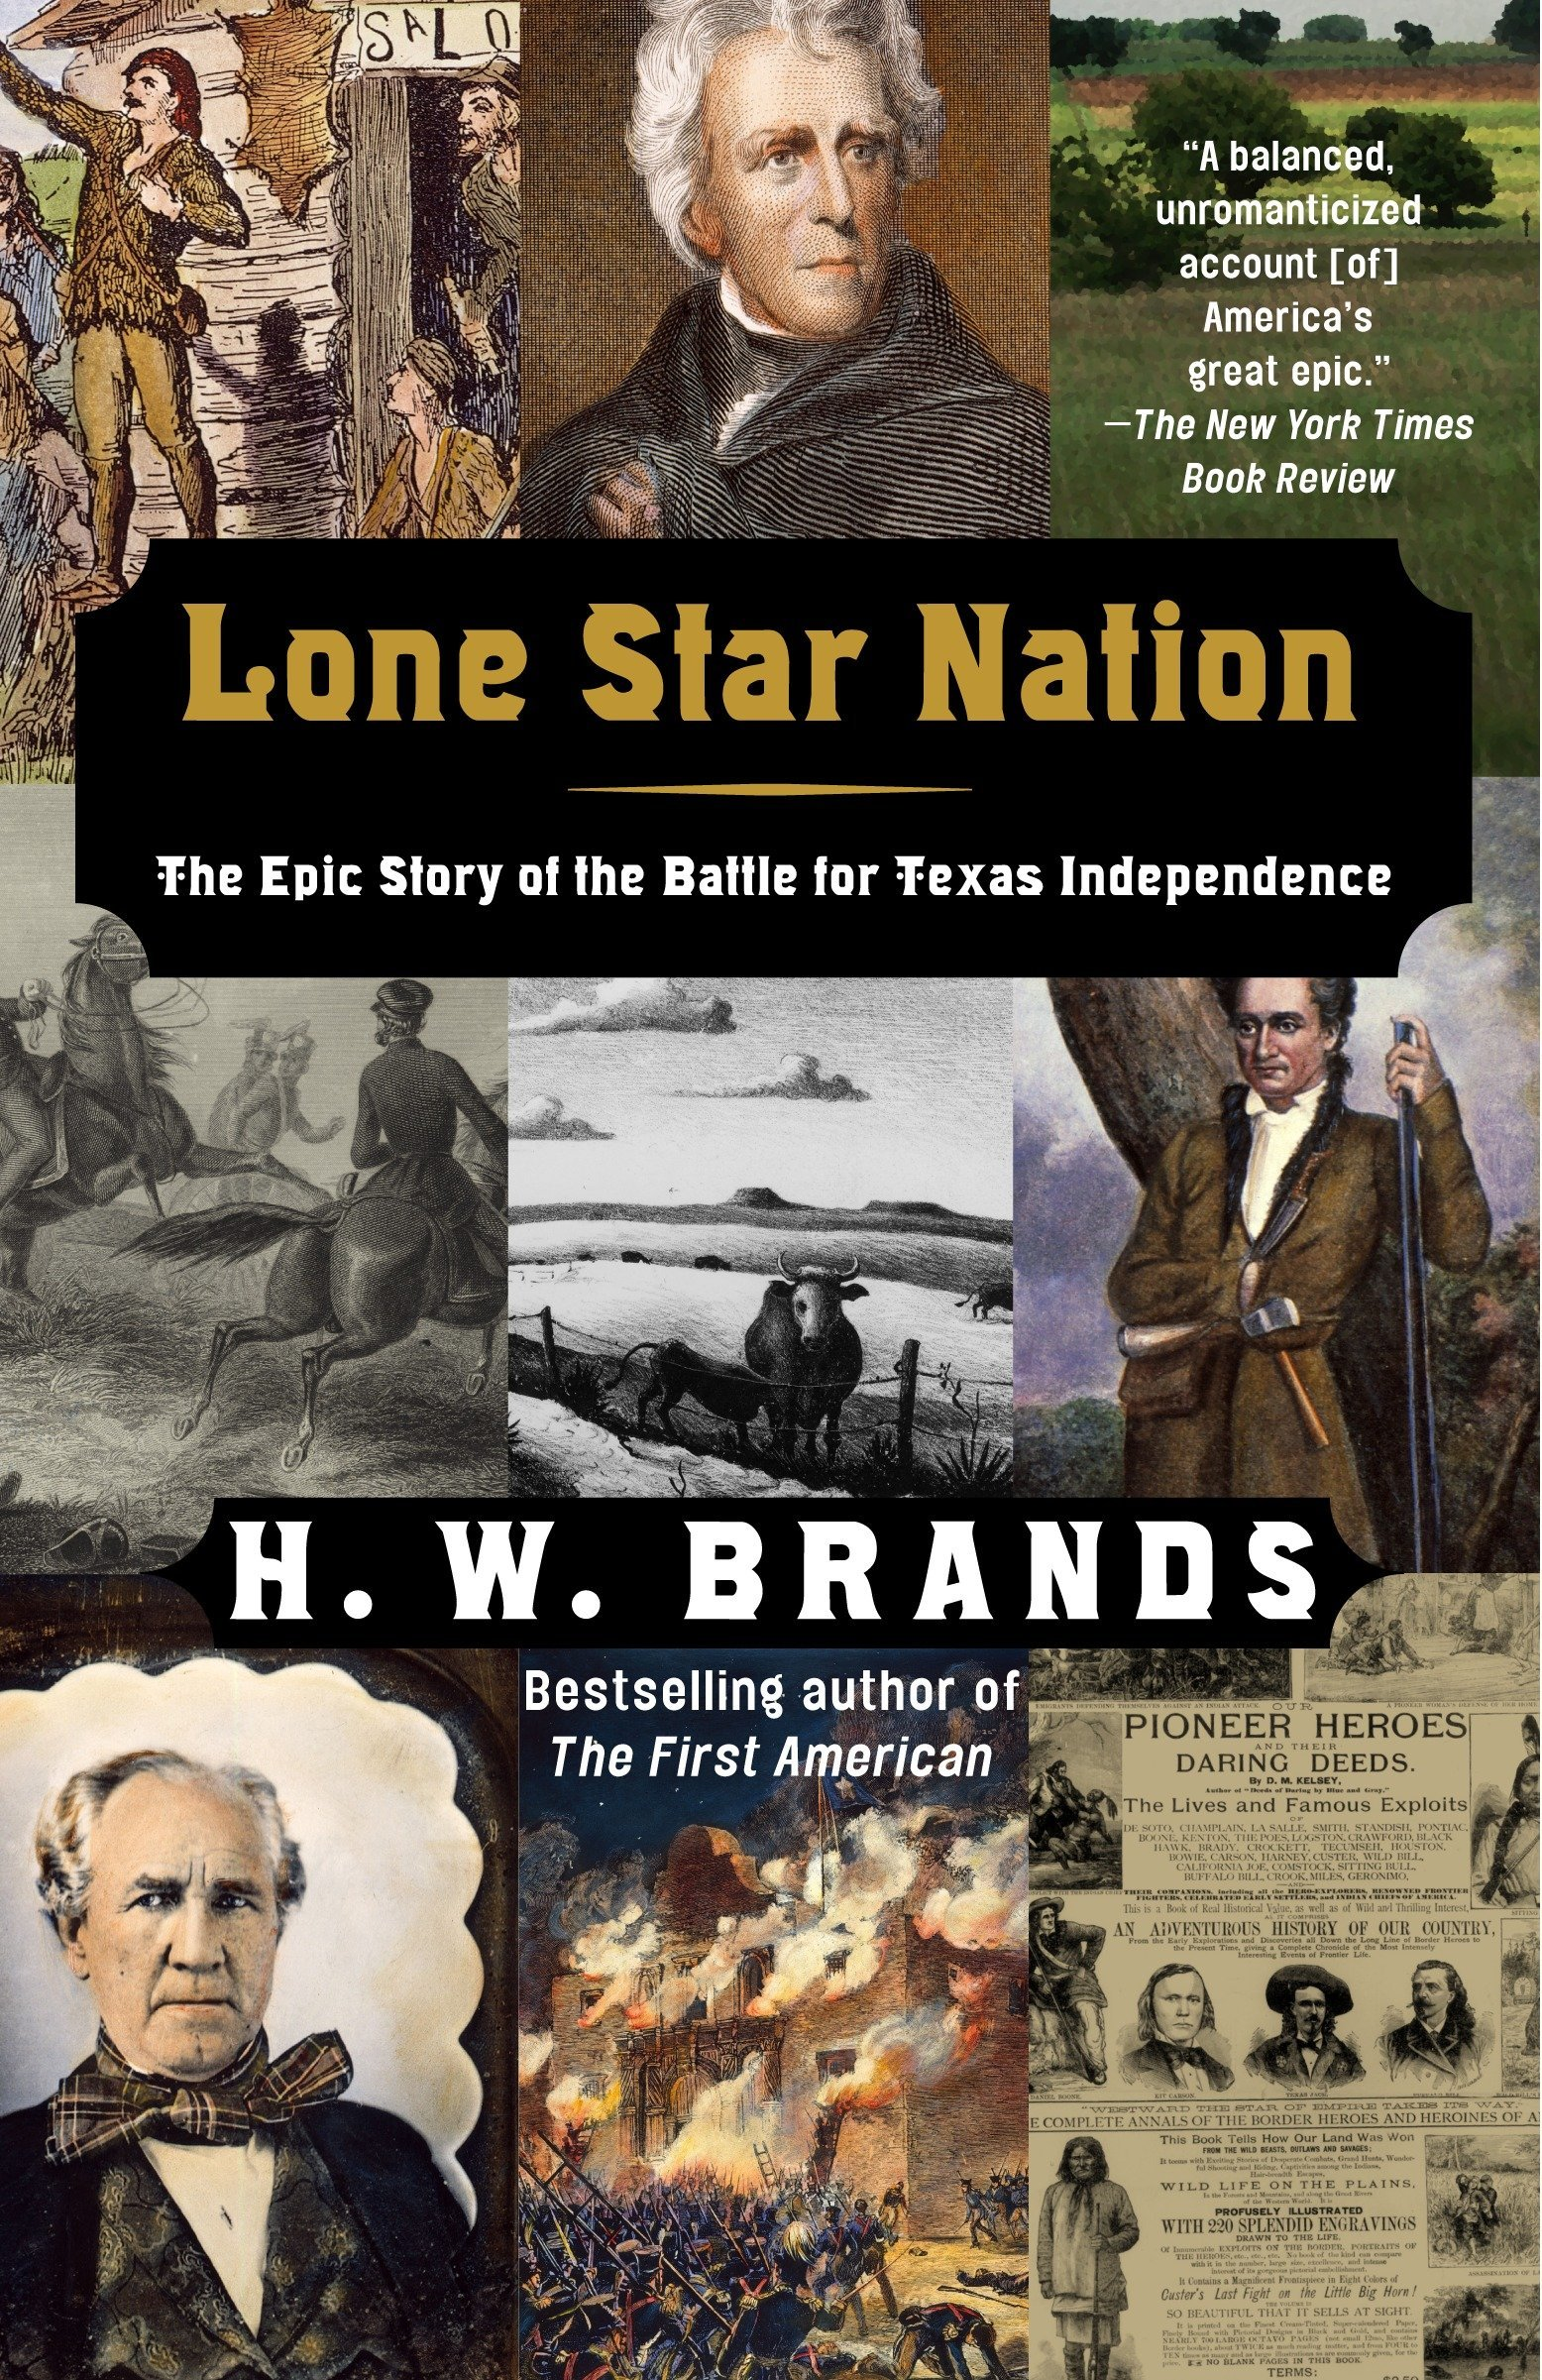 Lone Star Nation: The Epic Story of the Battle for Texas Independence